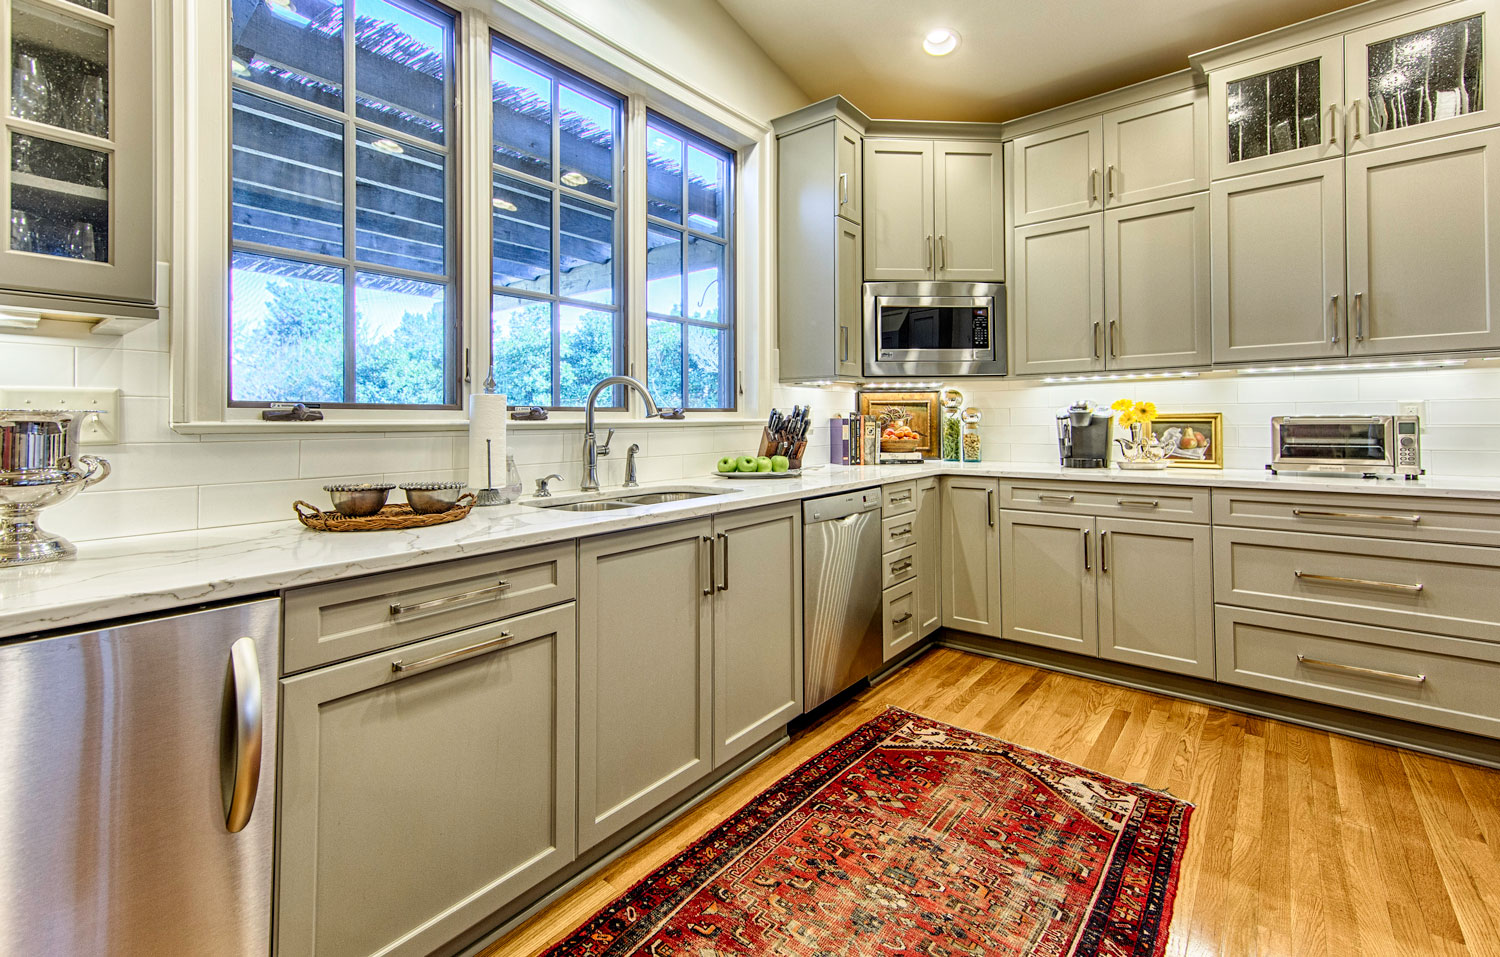 Kitchen remodel in the Highlands Tuscaloosa AL